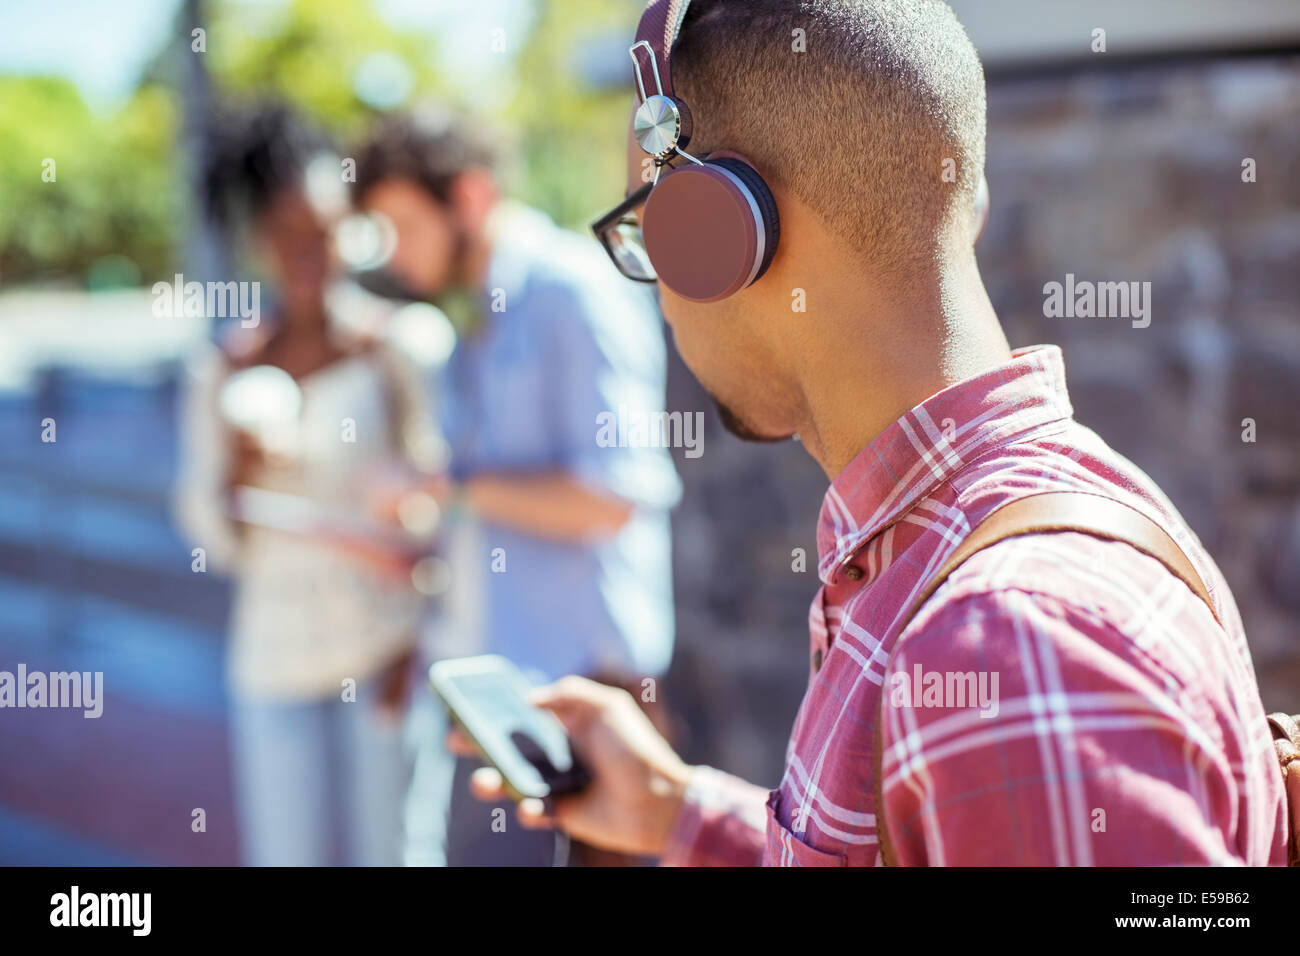 Man listening to mp3 player outdoors Photo Stock